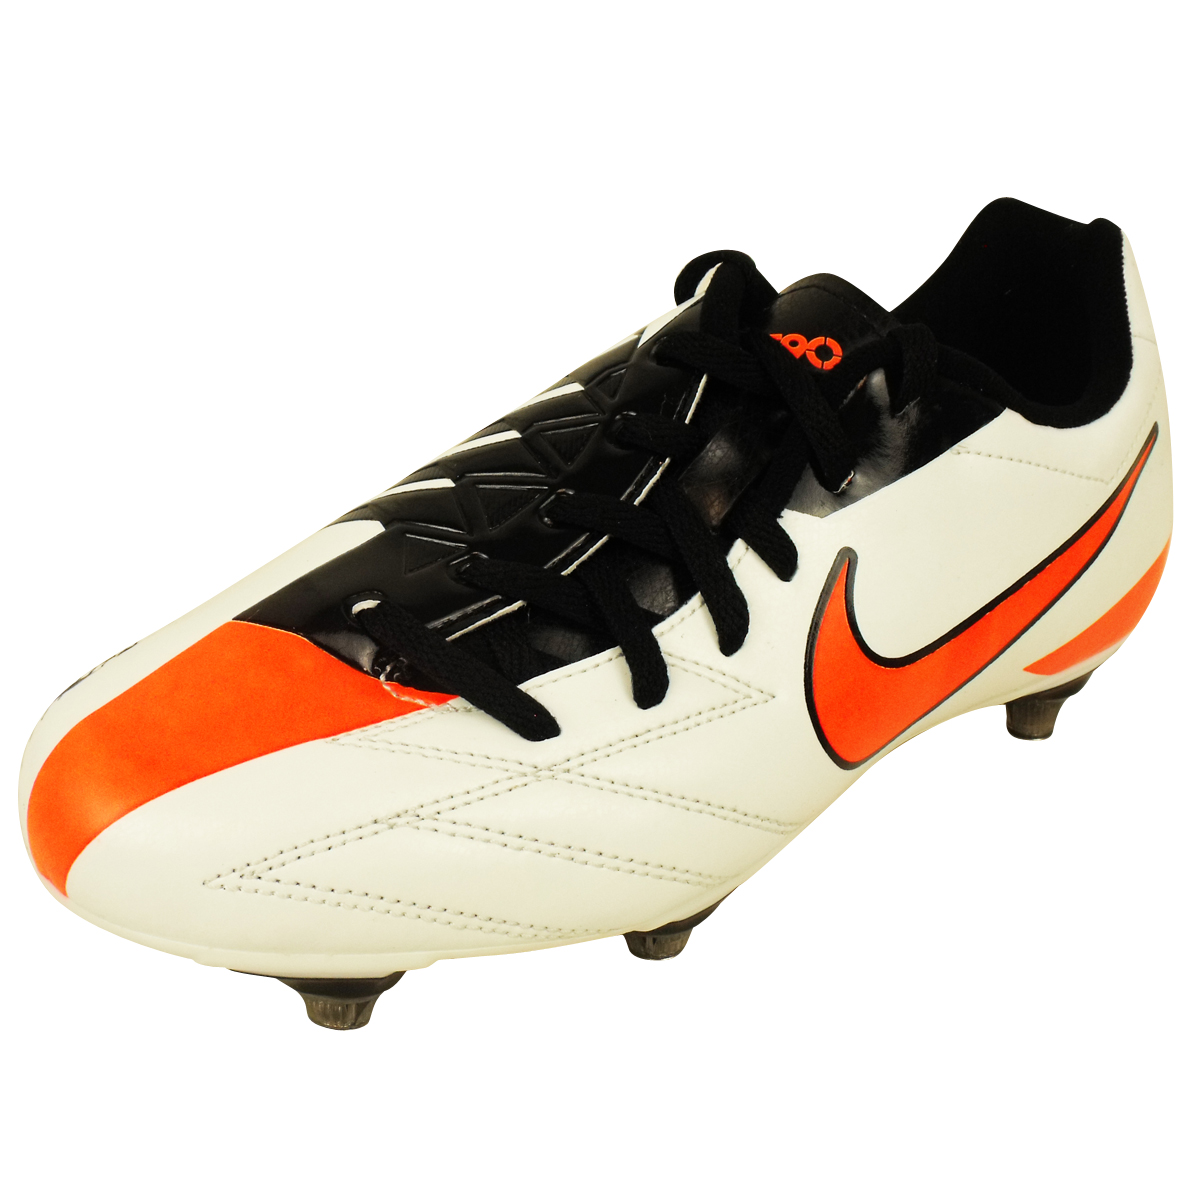 Boys-Nike-Total-90-SG-Soft-Ground-Football-Boots-Junior-Sizes-Kids-Size-UK-10-6